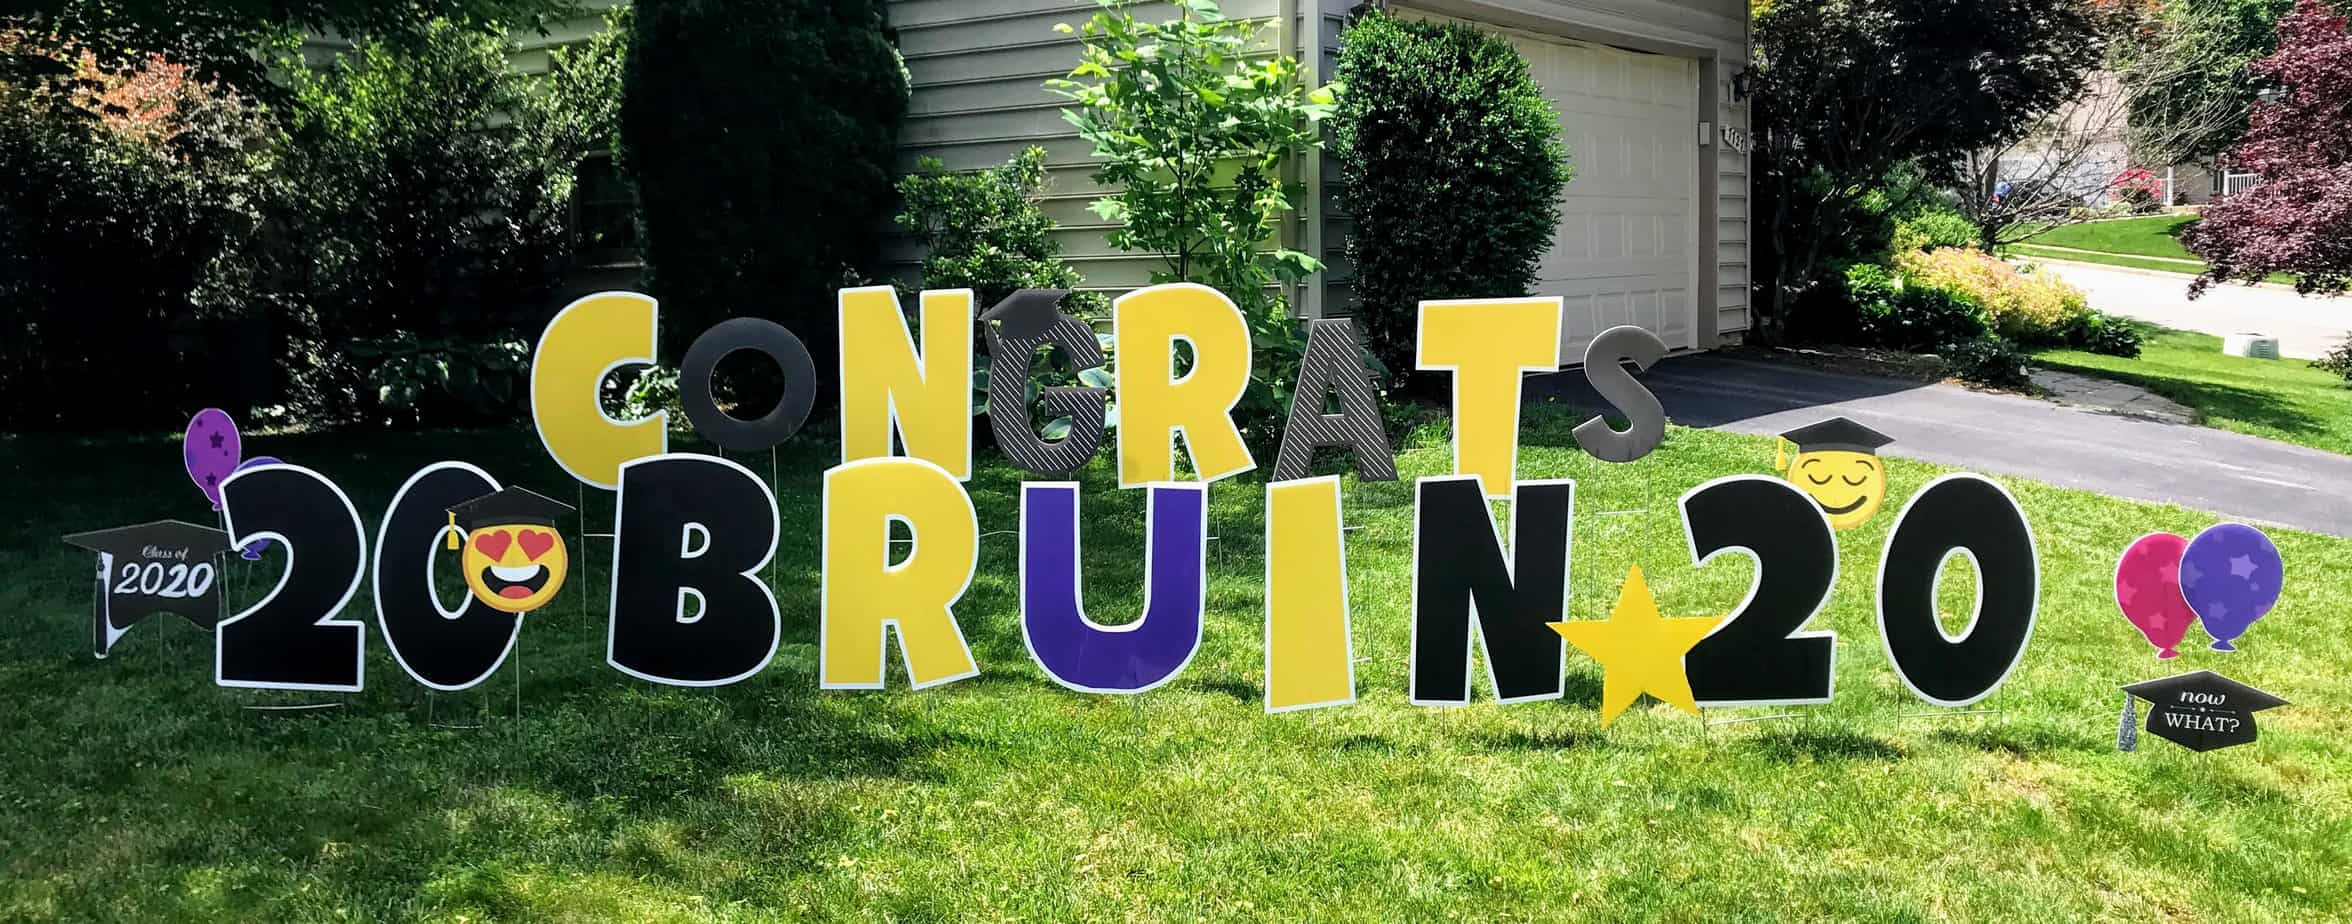 congratulations yard card burke va and springfield virginia